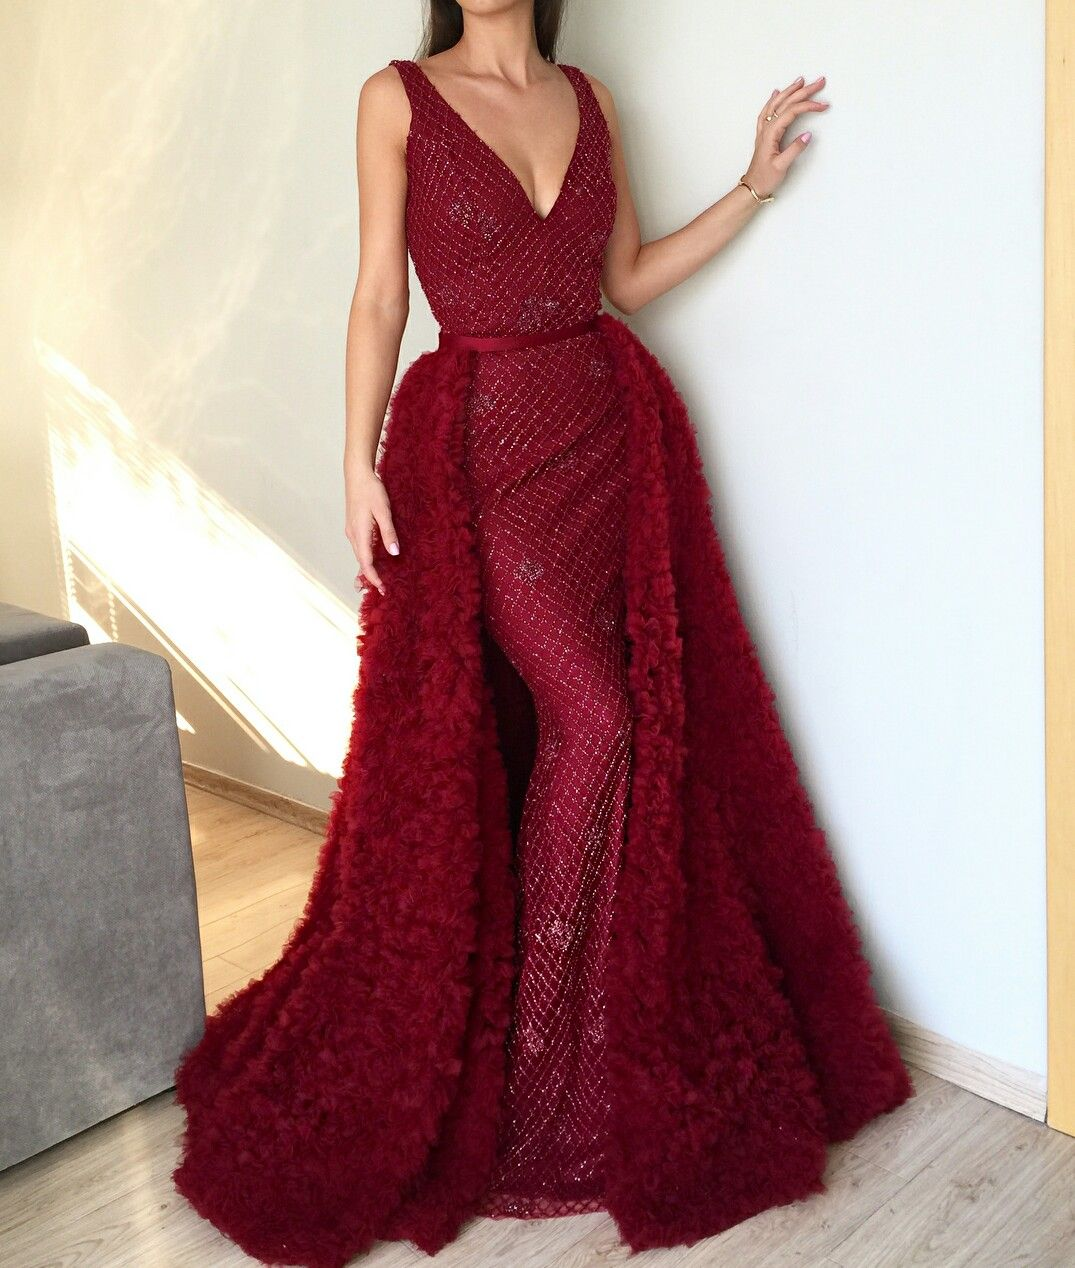 fdc907bcdd0 Beautiful red dress gown Sparkle haute couture Teuta Matoshi Duriqi ...